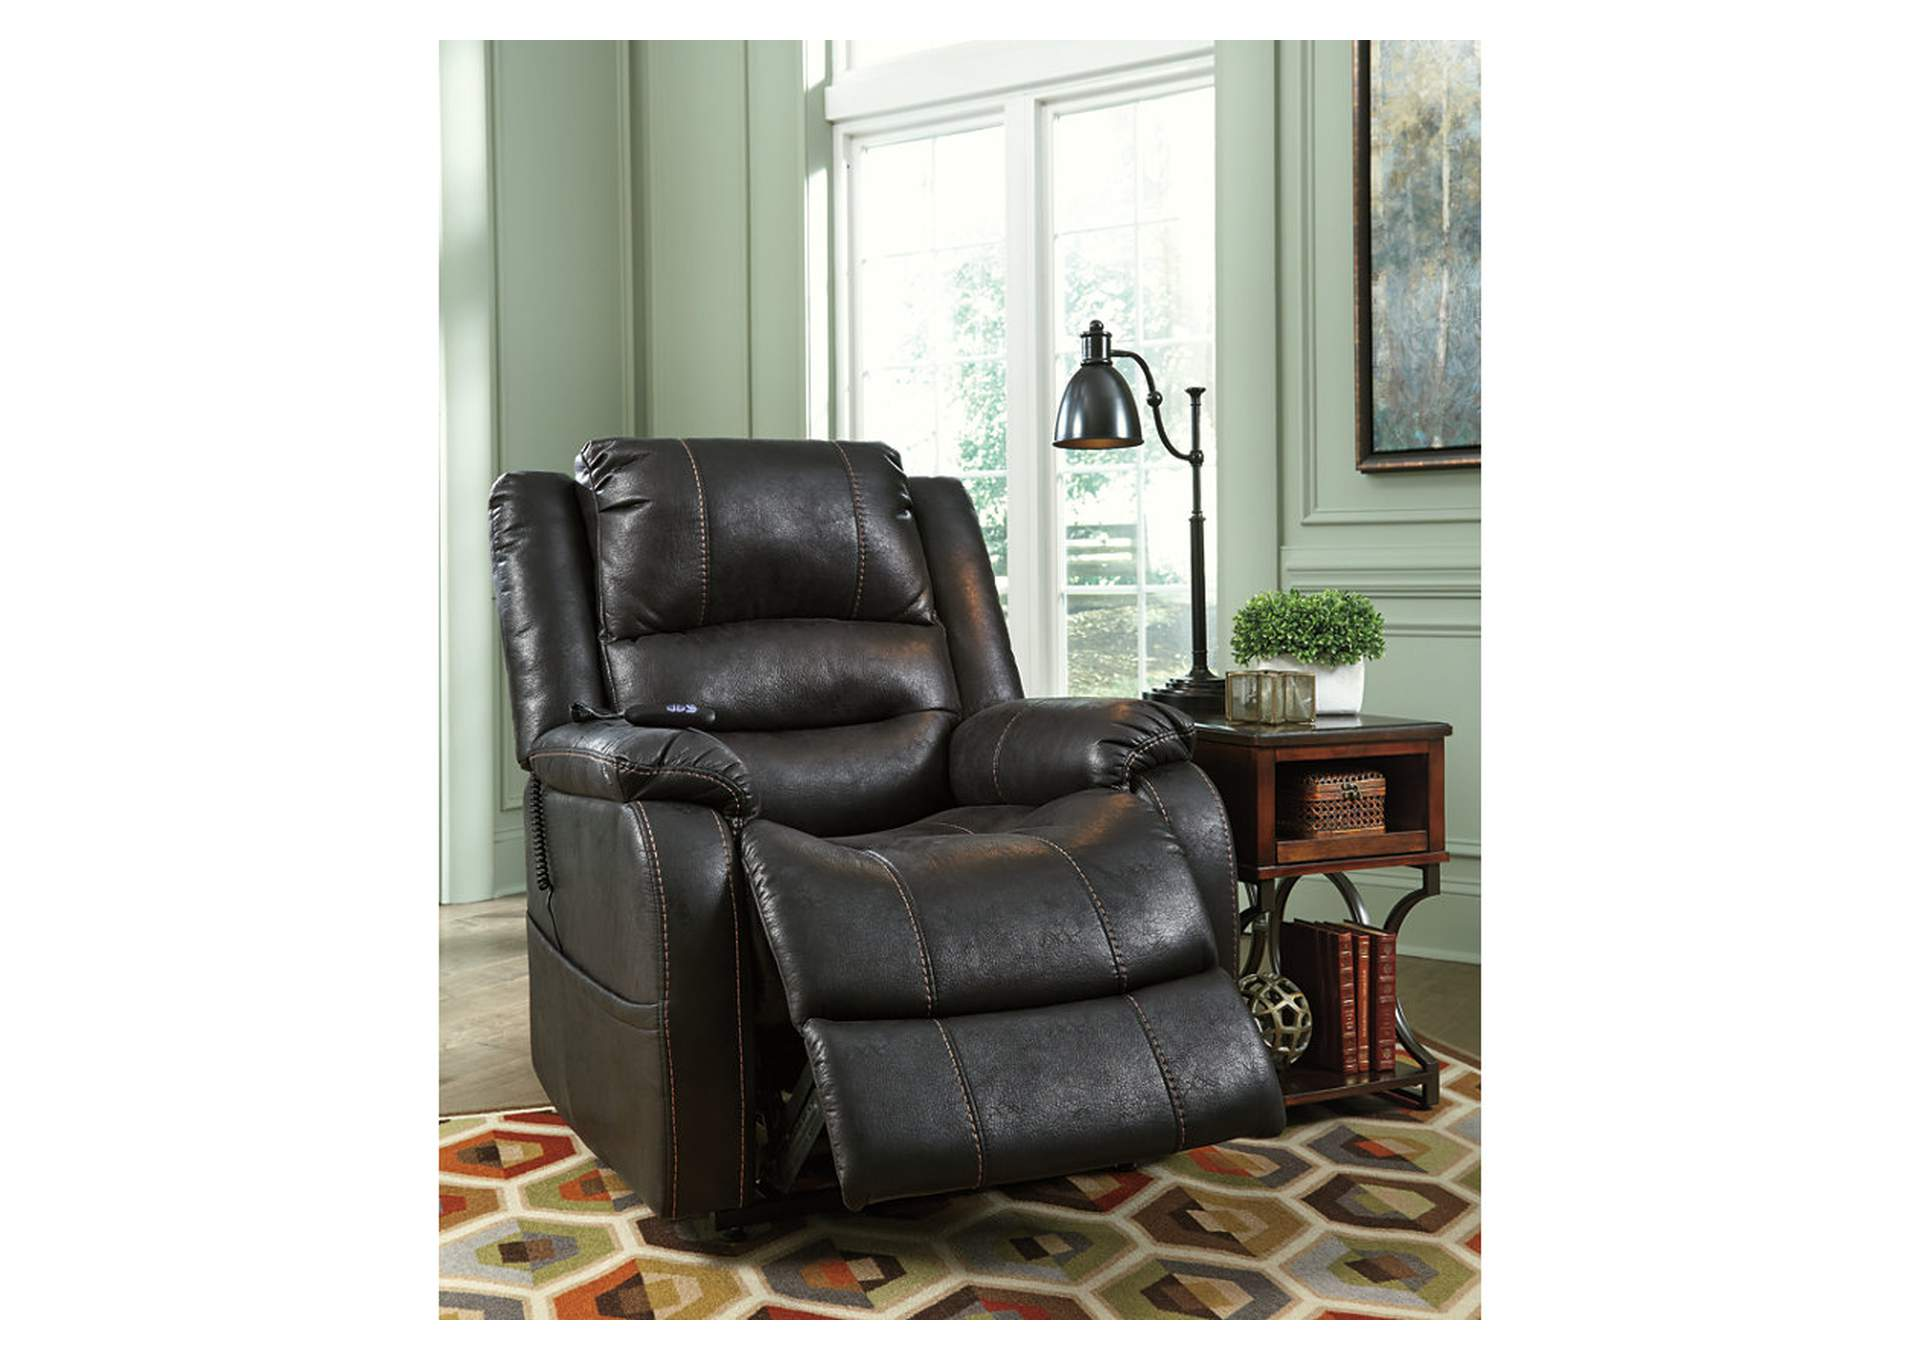 Yandel Black Power Lift Recliner,Signature Design By Ashley